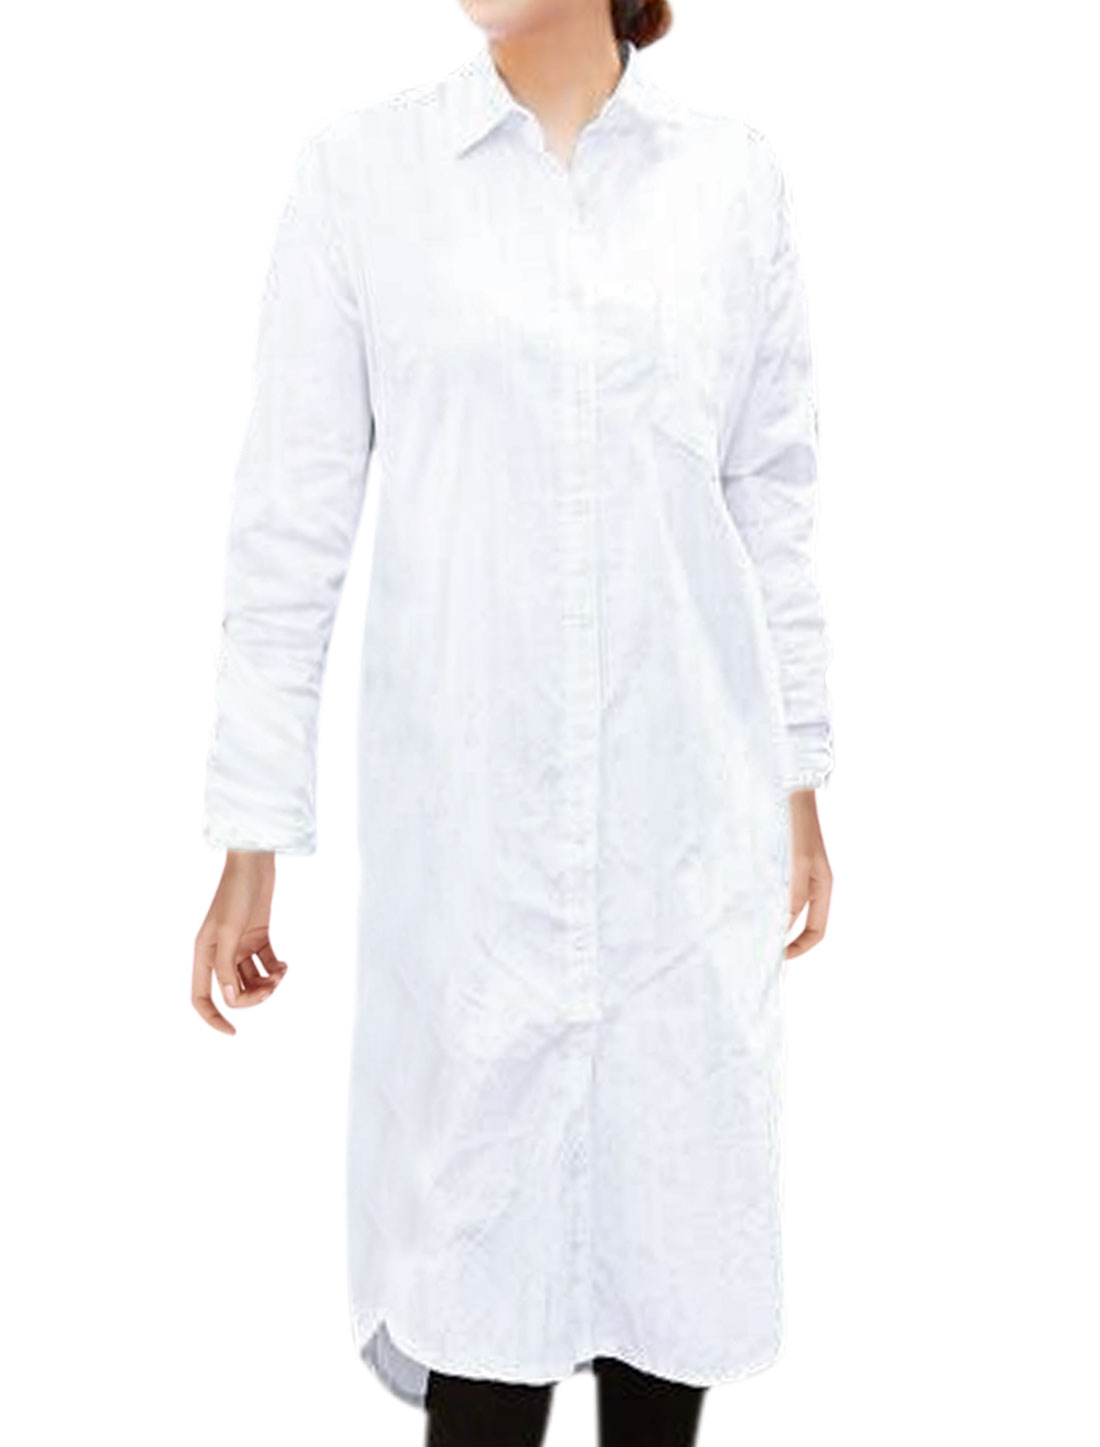 Women Hi-Lo Seam Pockets Tunic Shirt Dress White S